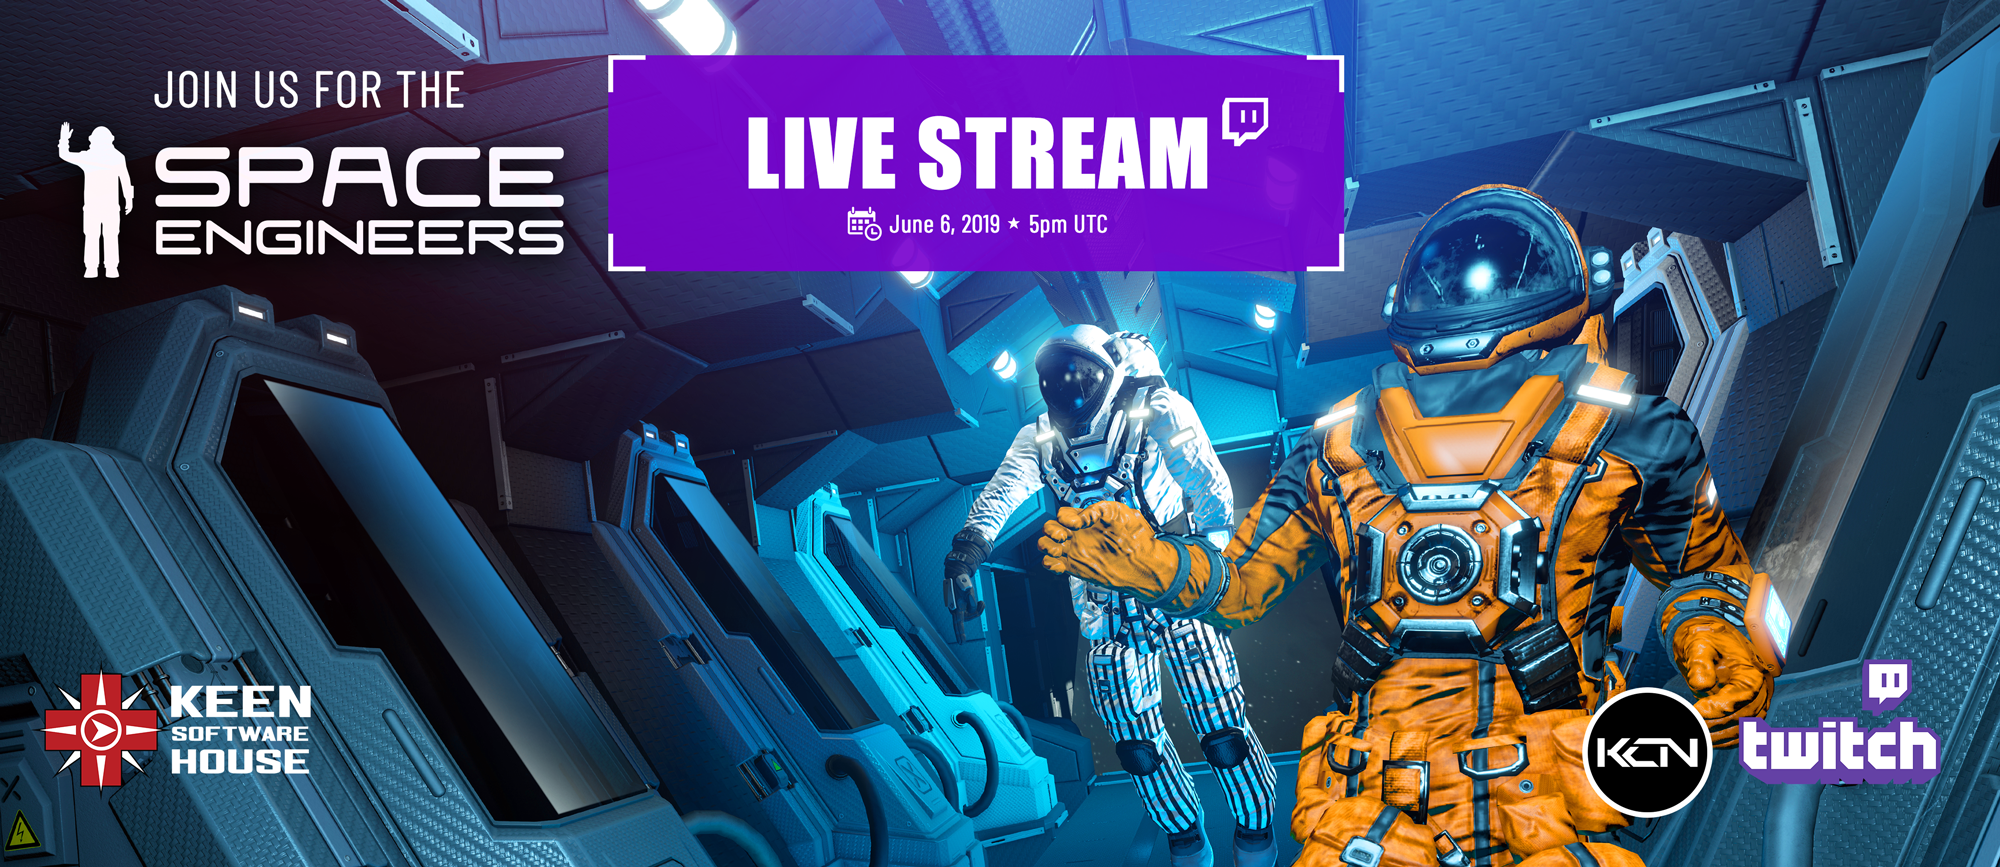 Space Engineers :: Only One More Day Until the Livestream!